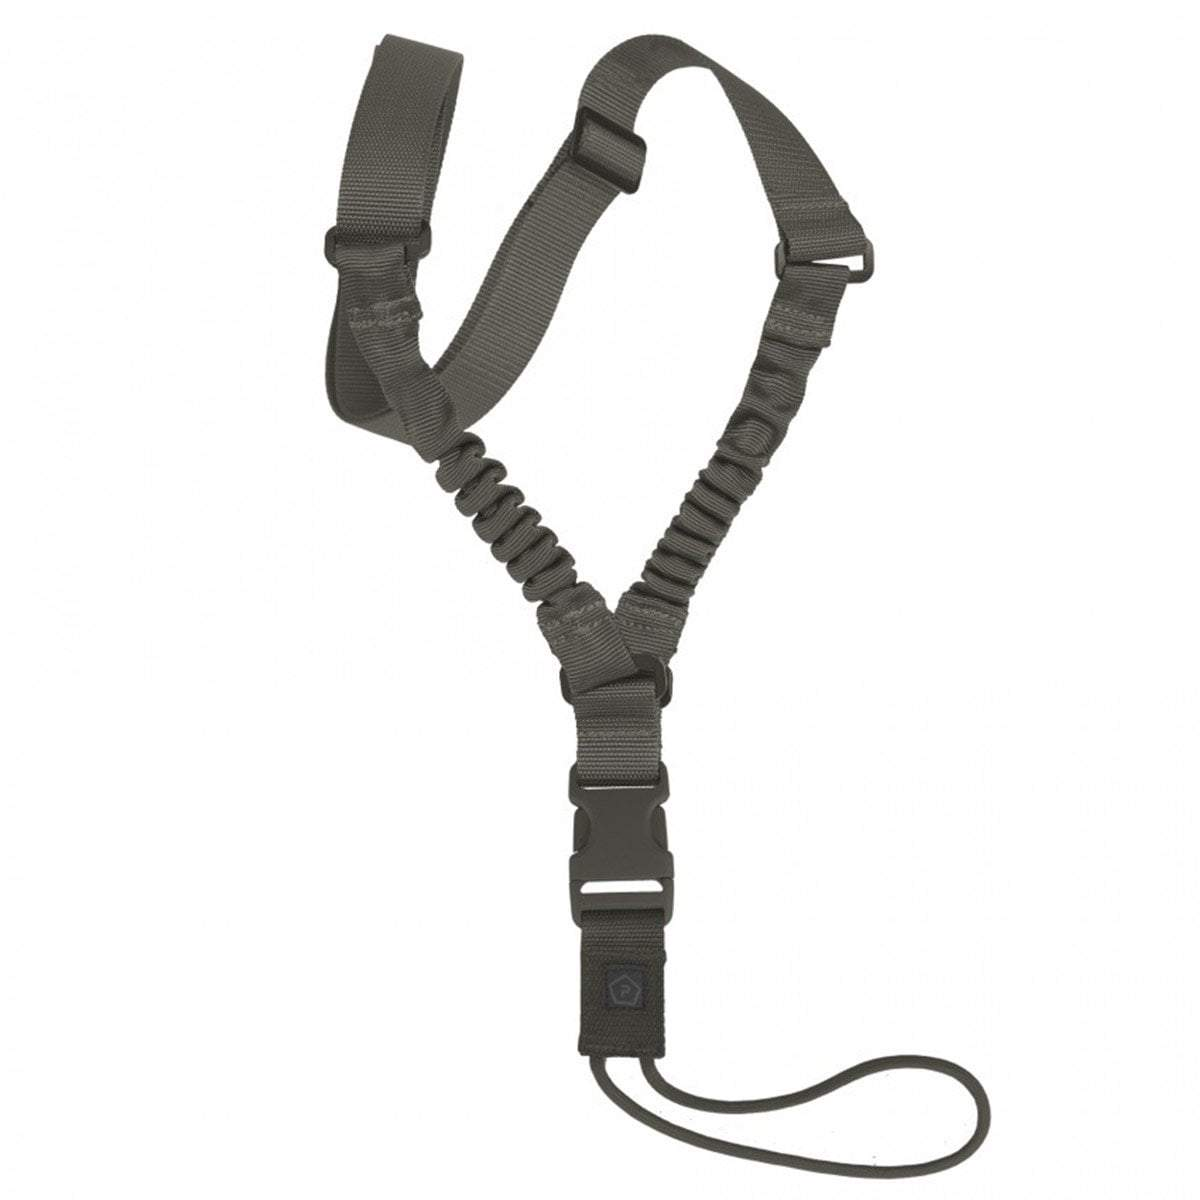 PENTAGON AMMA RIFLE SLING | 1-Point Bungee Weapon Sling | RAL7013 | UKMC Pro